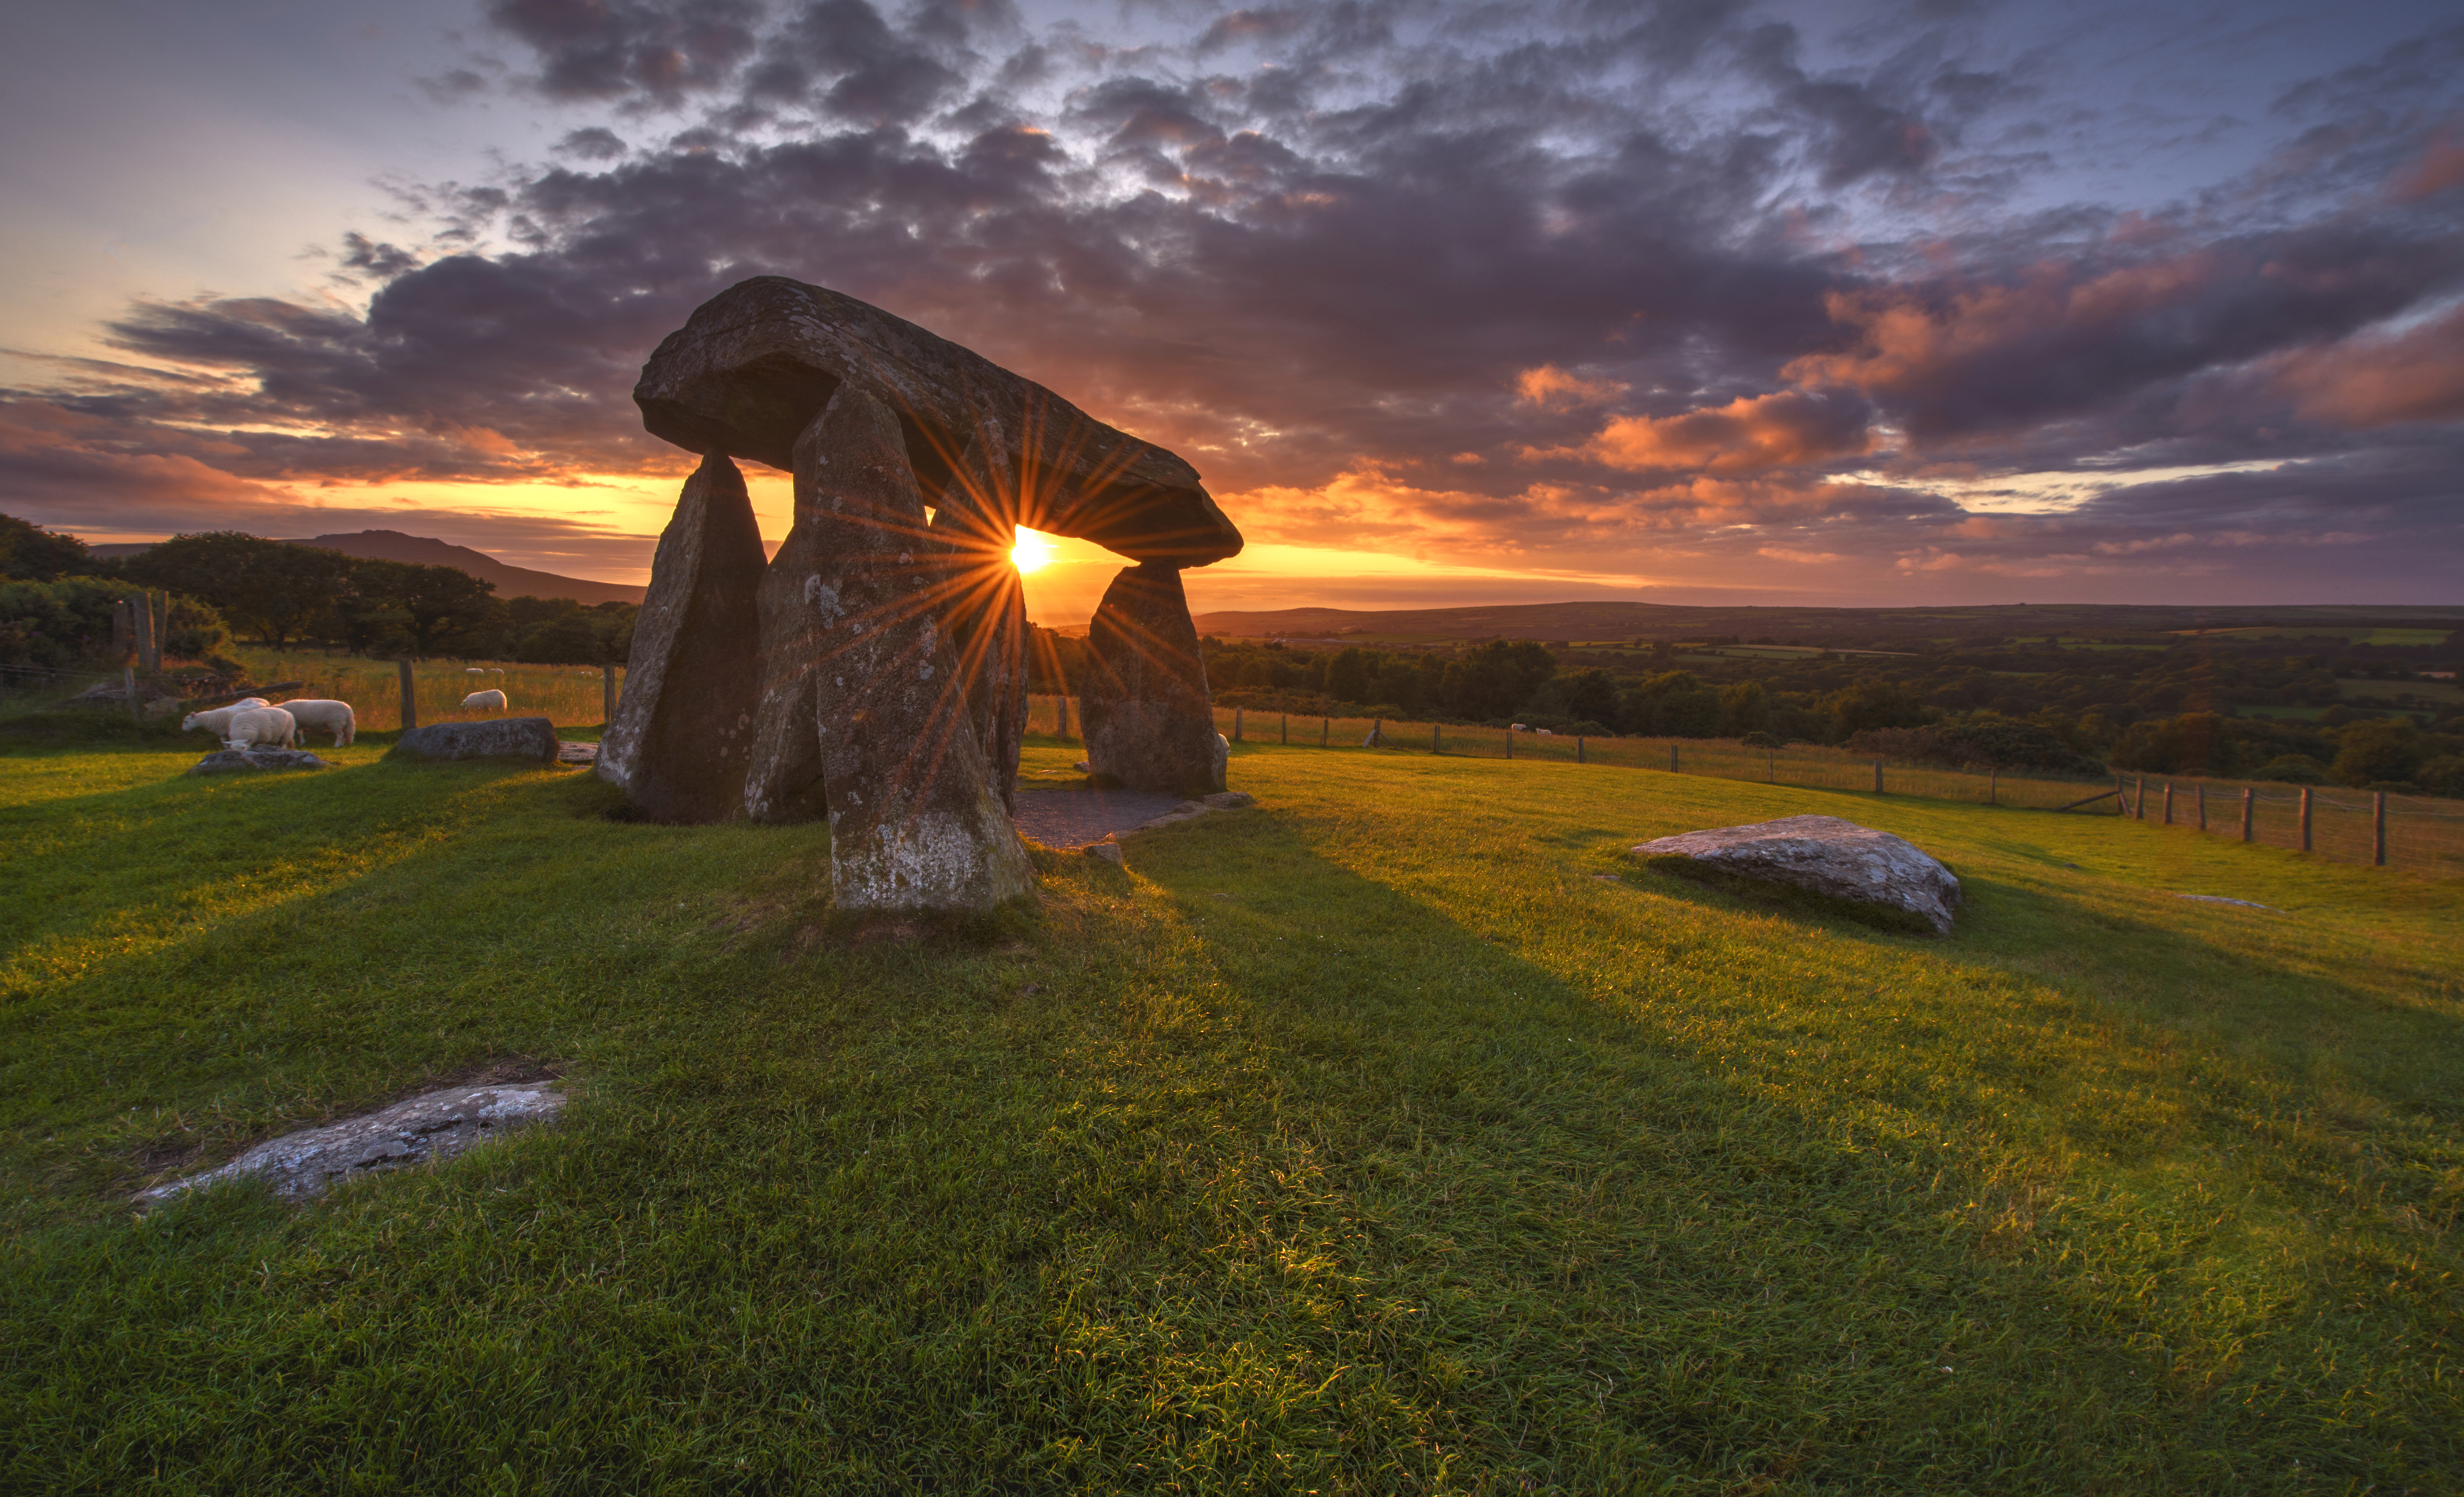 Colorful sunset over Pentre Ifan Burial chamber, Wales, England